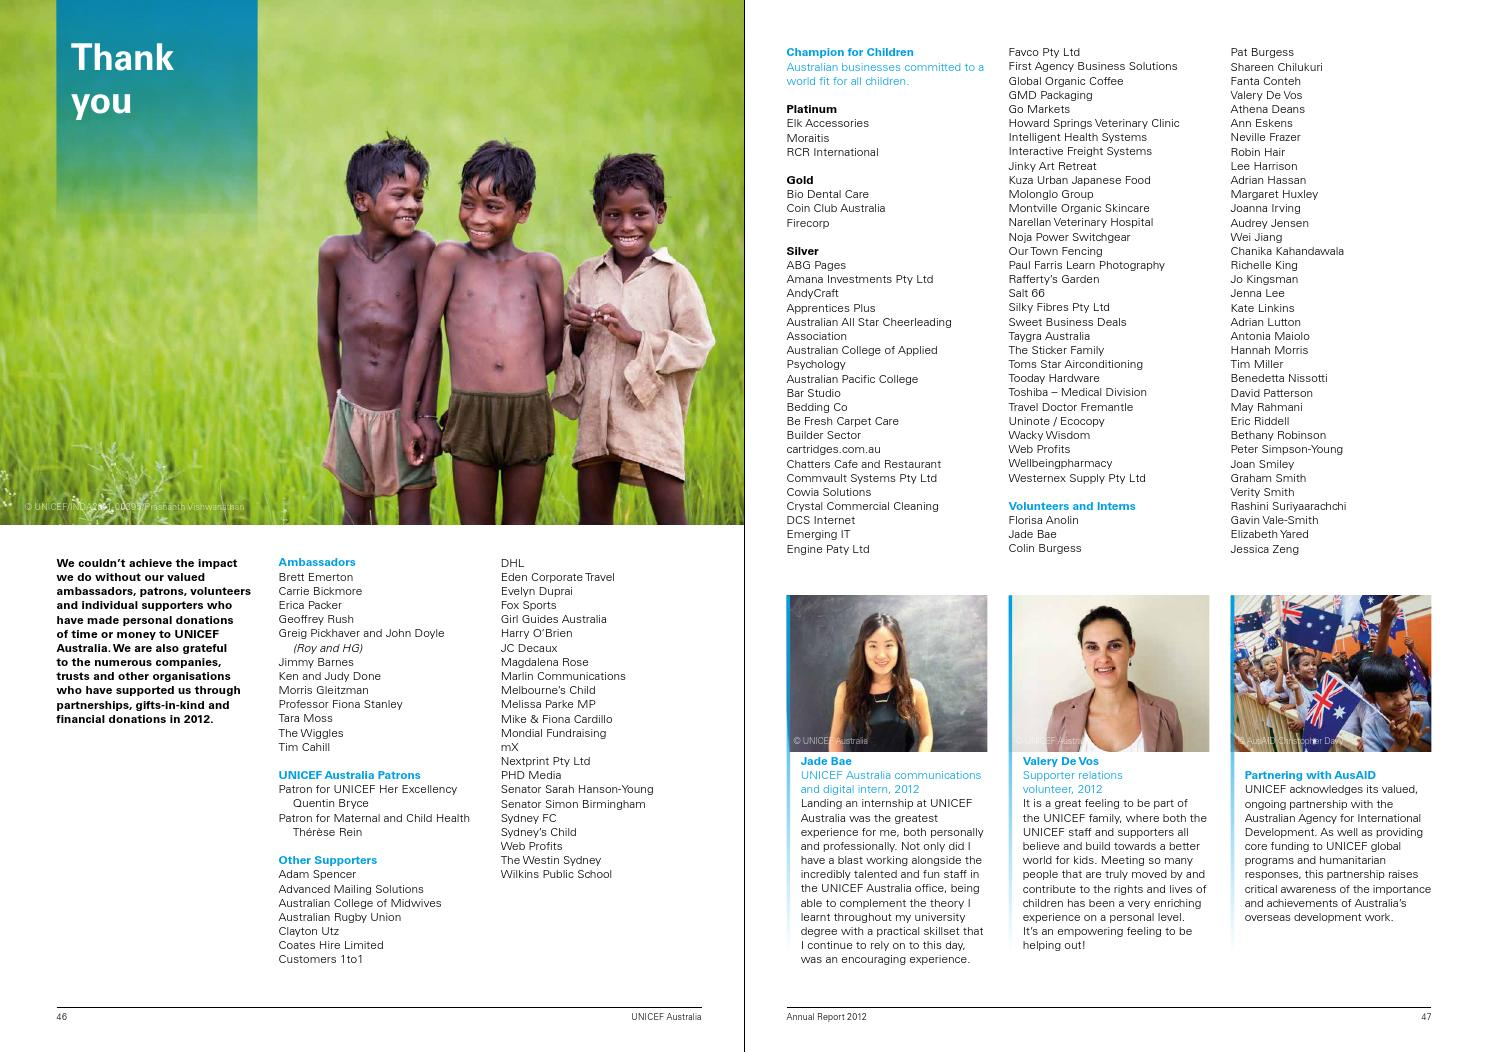 UNICEF Australia 2012 Annual Report by UNICEF Australia - issuu